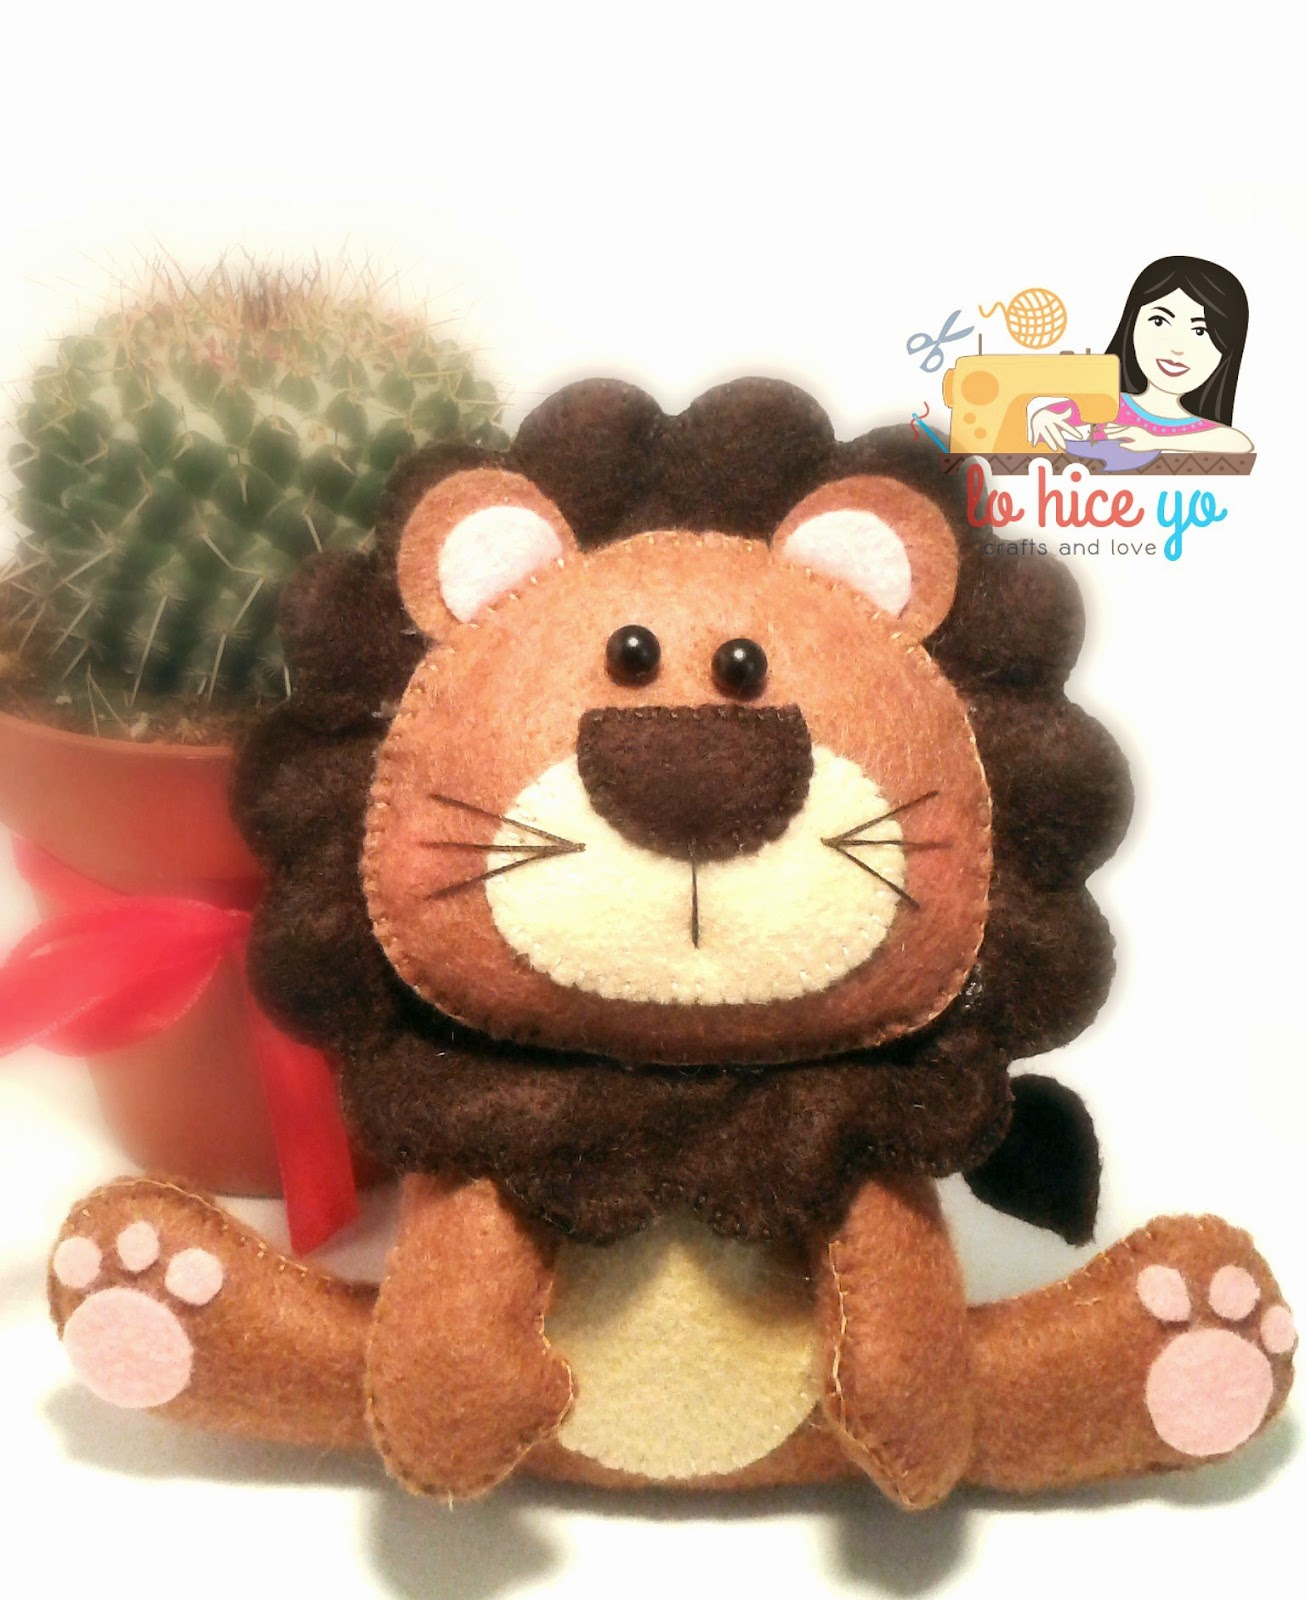 https://www.etsy.com/listing/186766318/felt-lion-plush?ref=shop_home_active_2